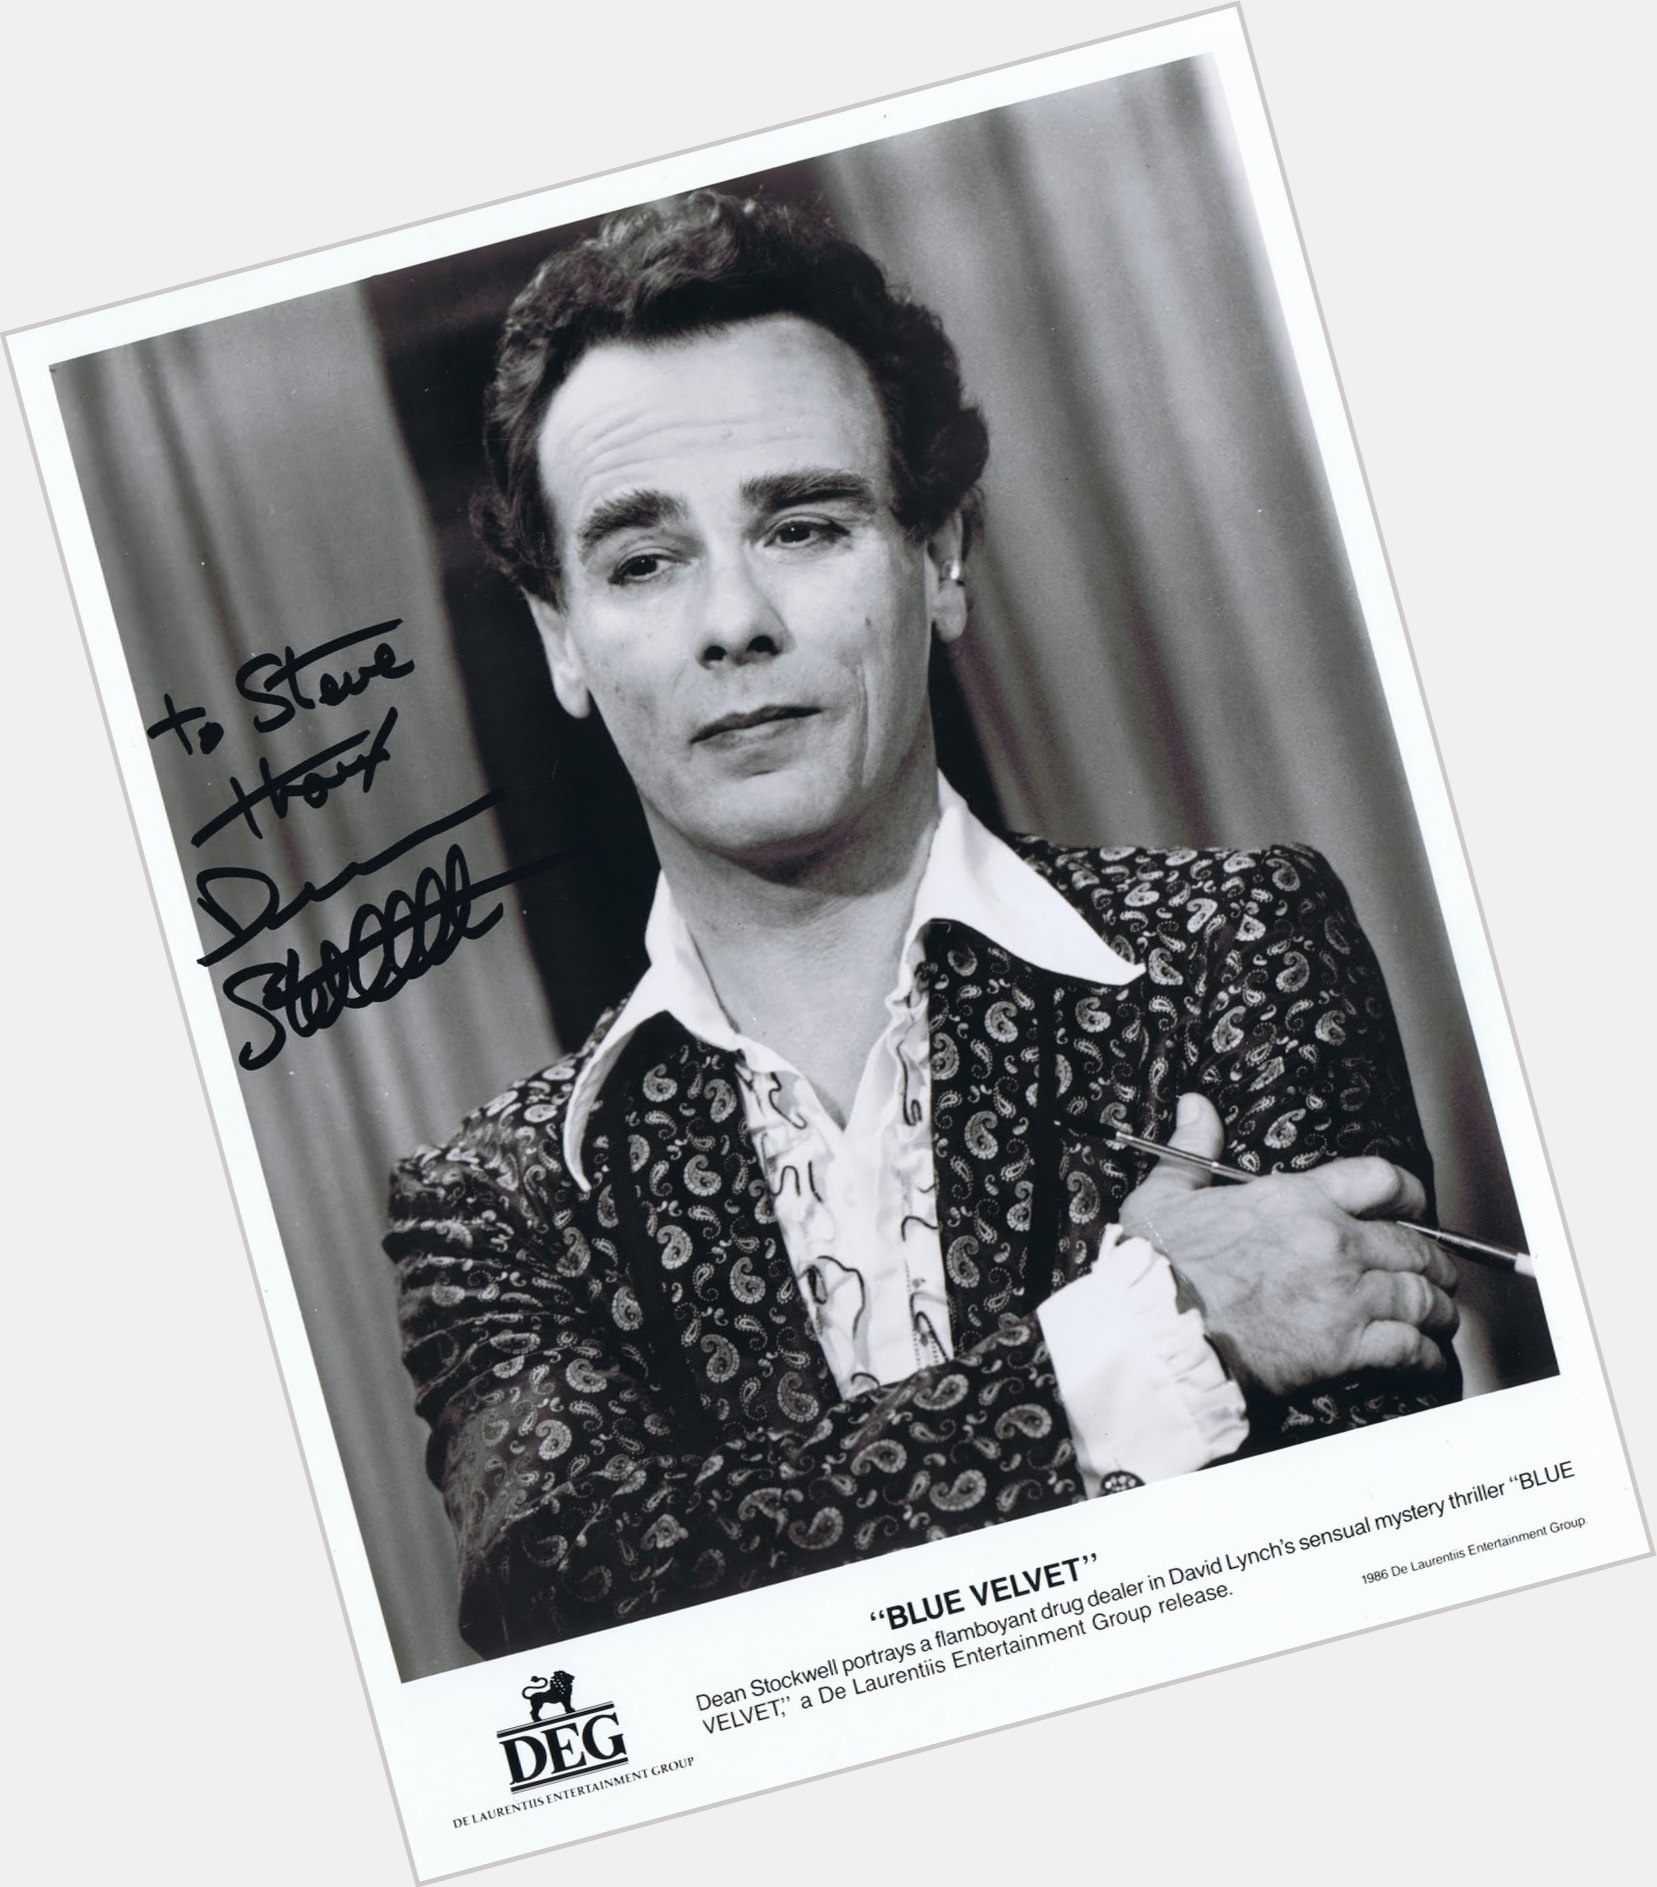 Dean Stockwell exclusive hot pic 3.jpg